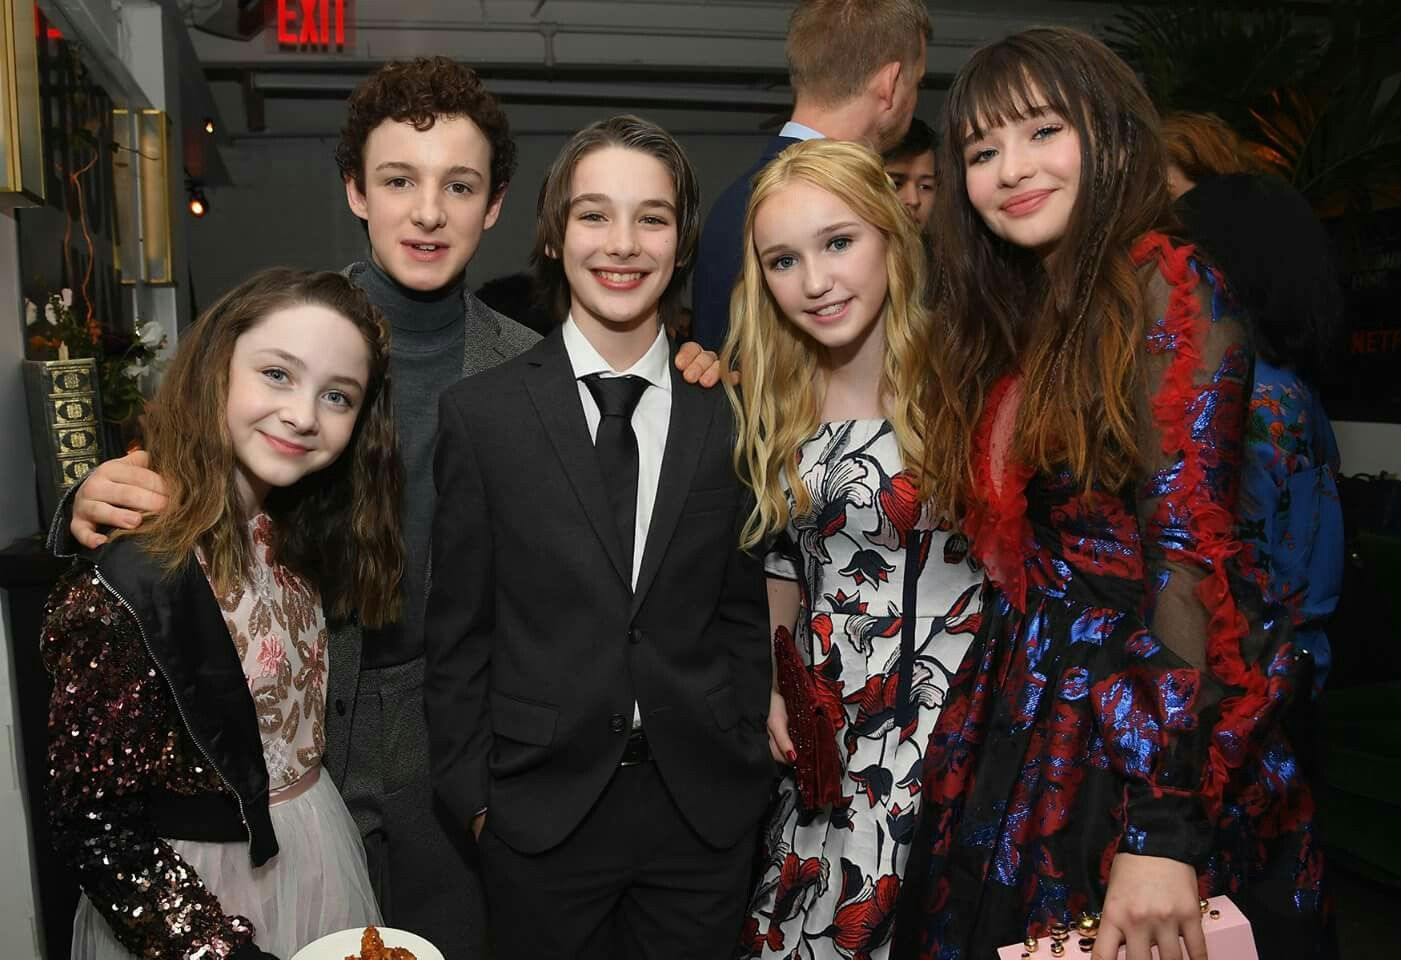 Love These Fantastic Kids From A Series Of Unfortunate Events C As